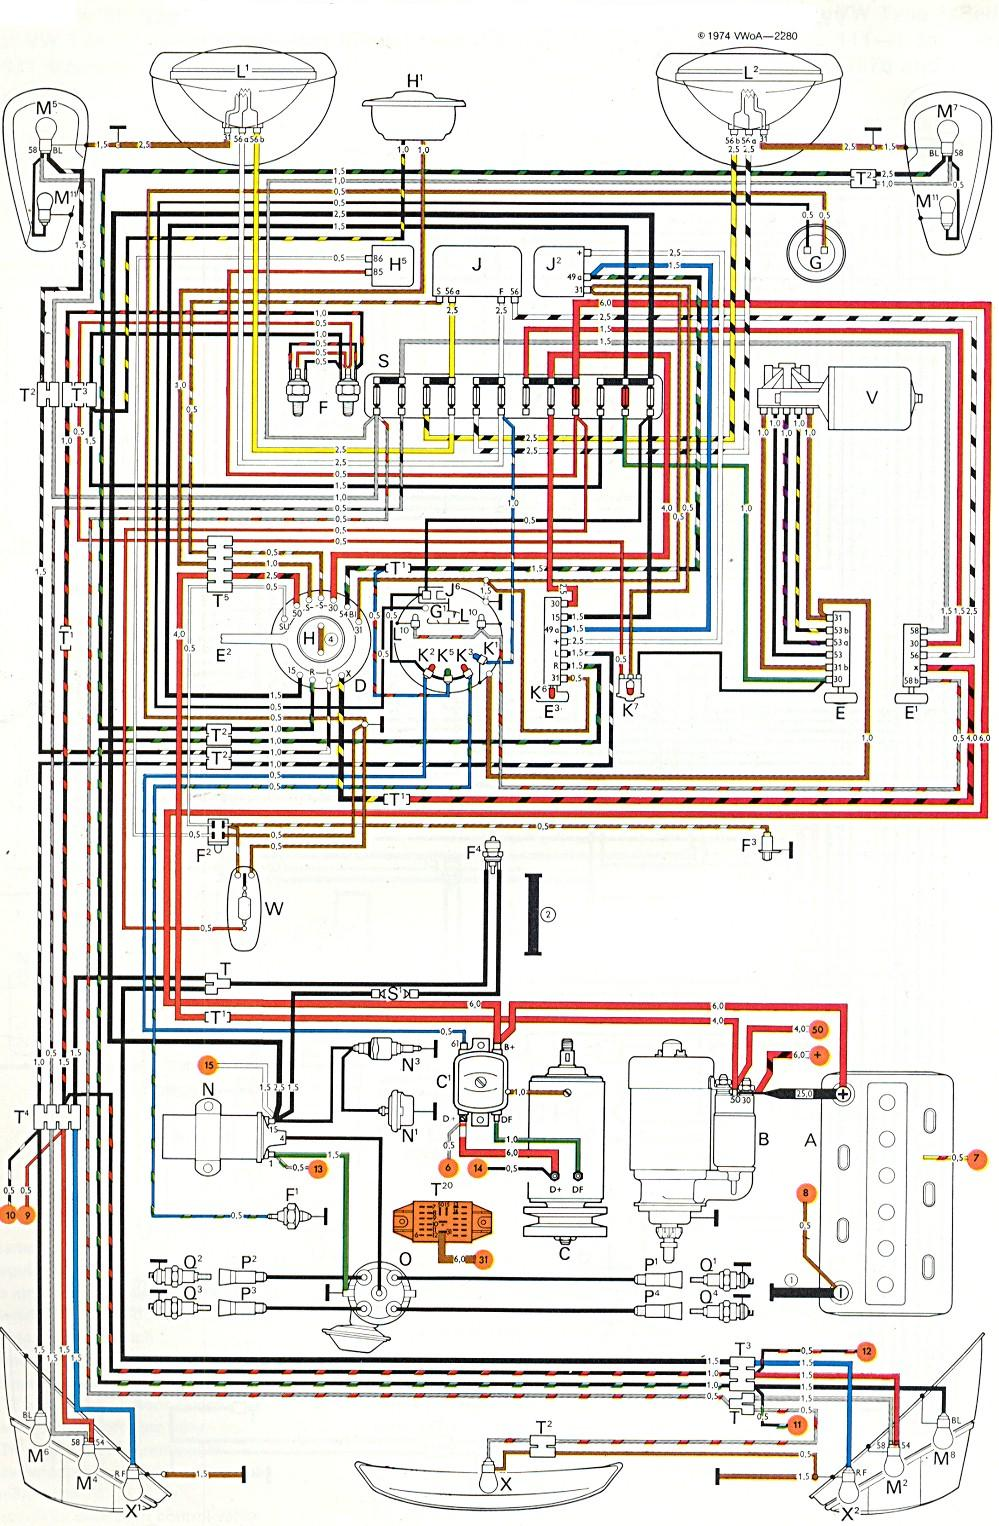 hight resolution of vw wiring harness diagram wiring diagram schema blogvw wiring harness diagram wiring diagram 2001 vw passat